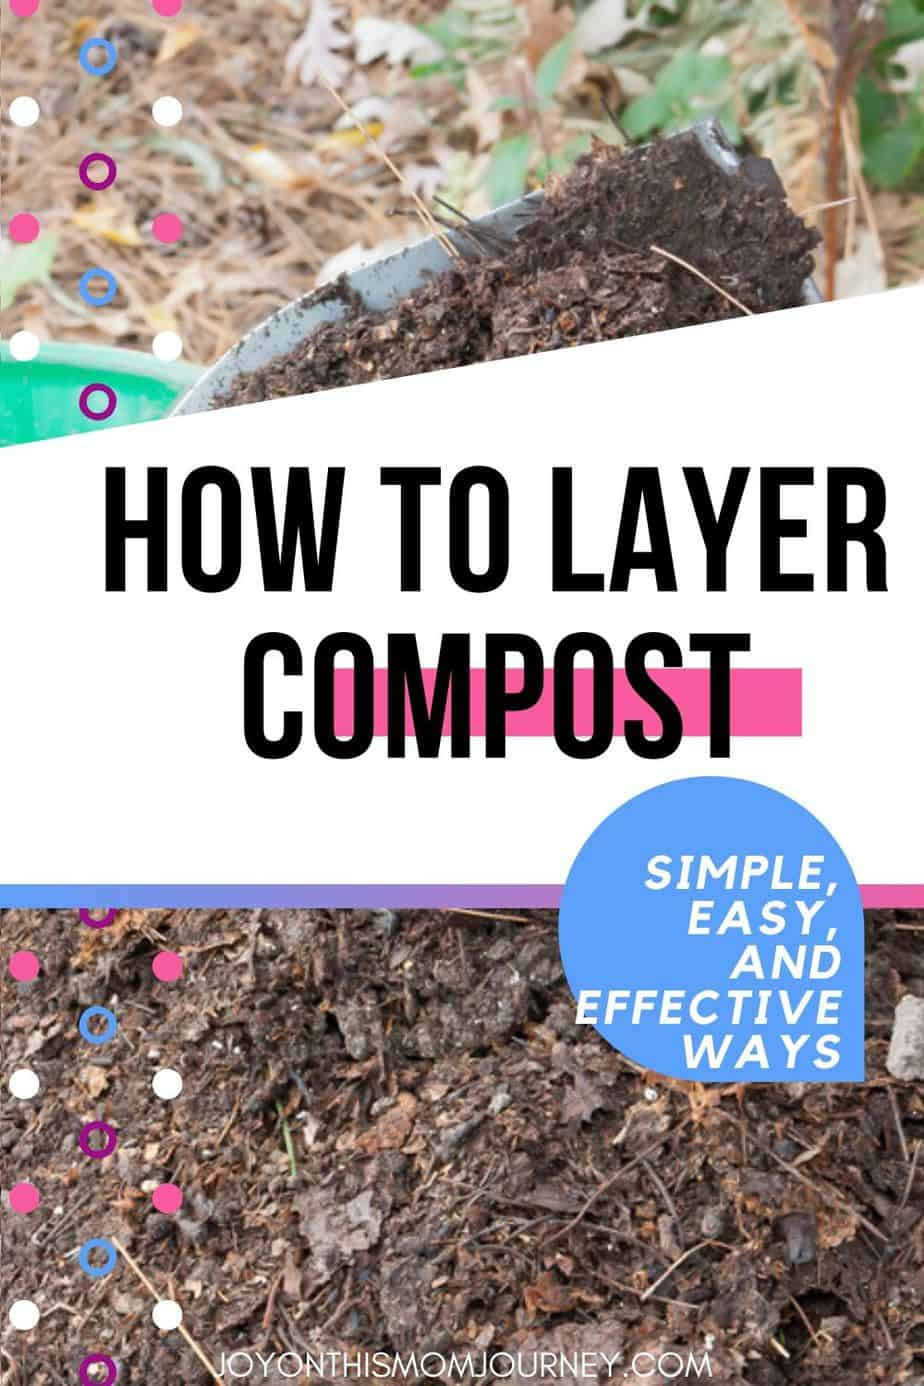 How to layer compost! Simple, easy, and effective ways to compost for the best soil amendment you can get!